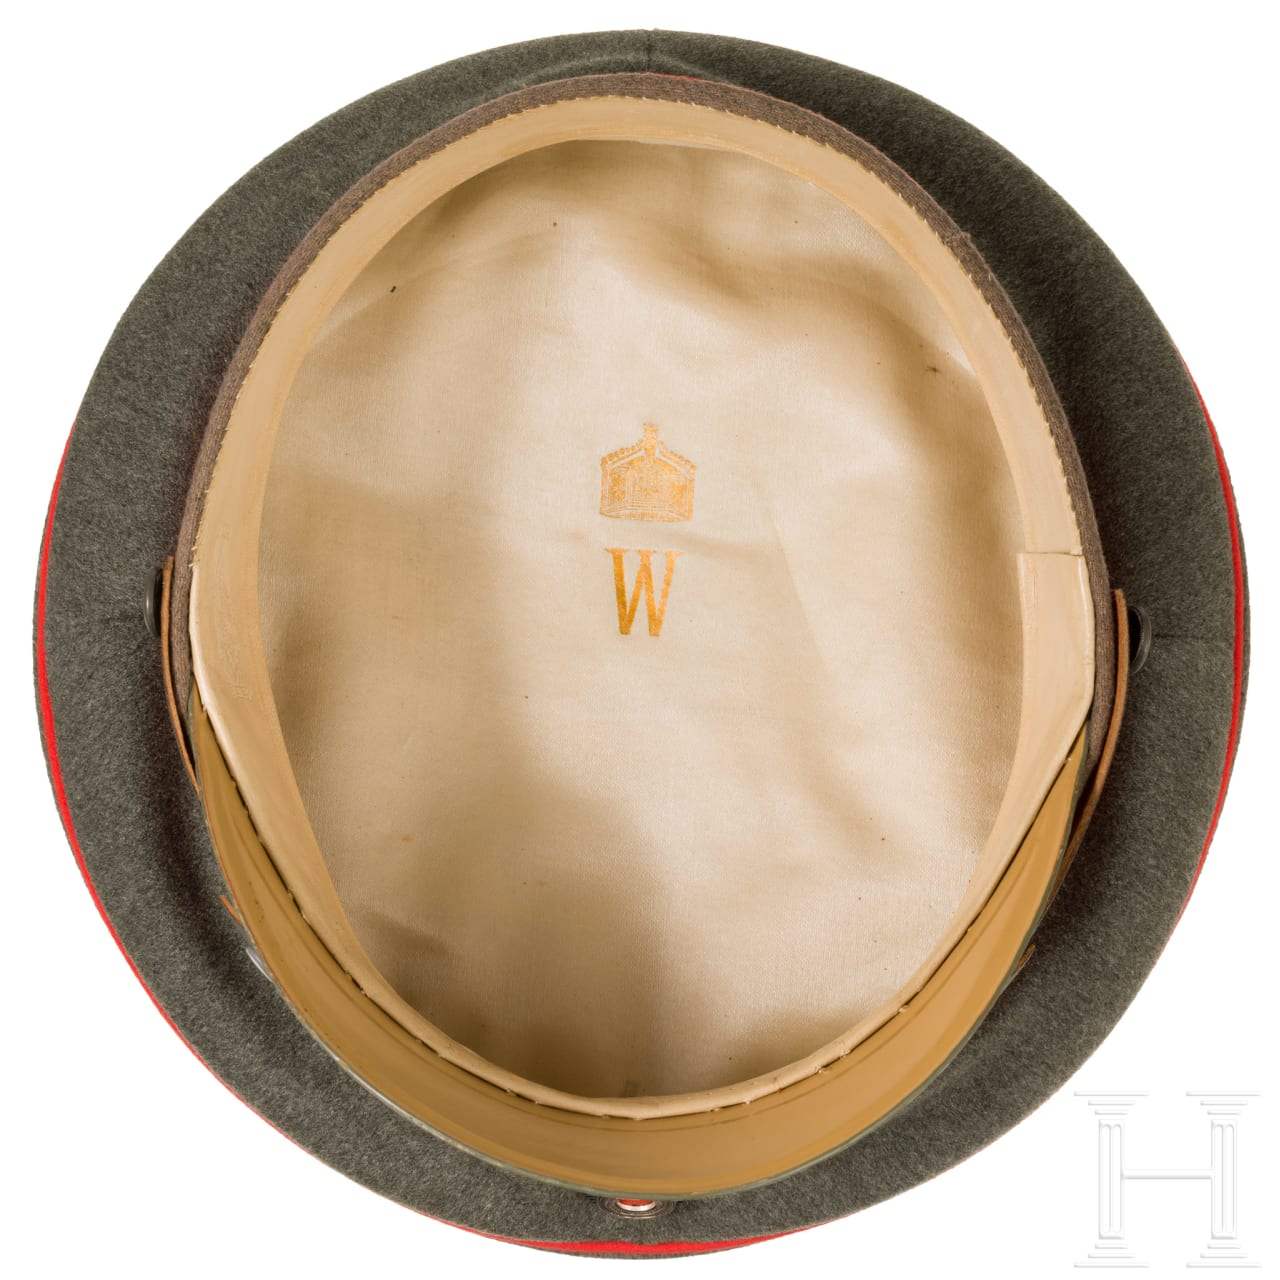 Kaiser Wilhelm II – a personal visor cap for his field-grey uniform, circa 1915